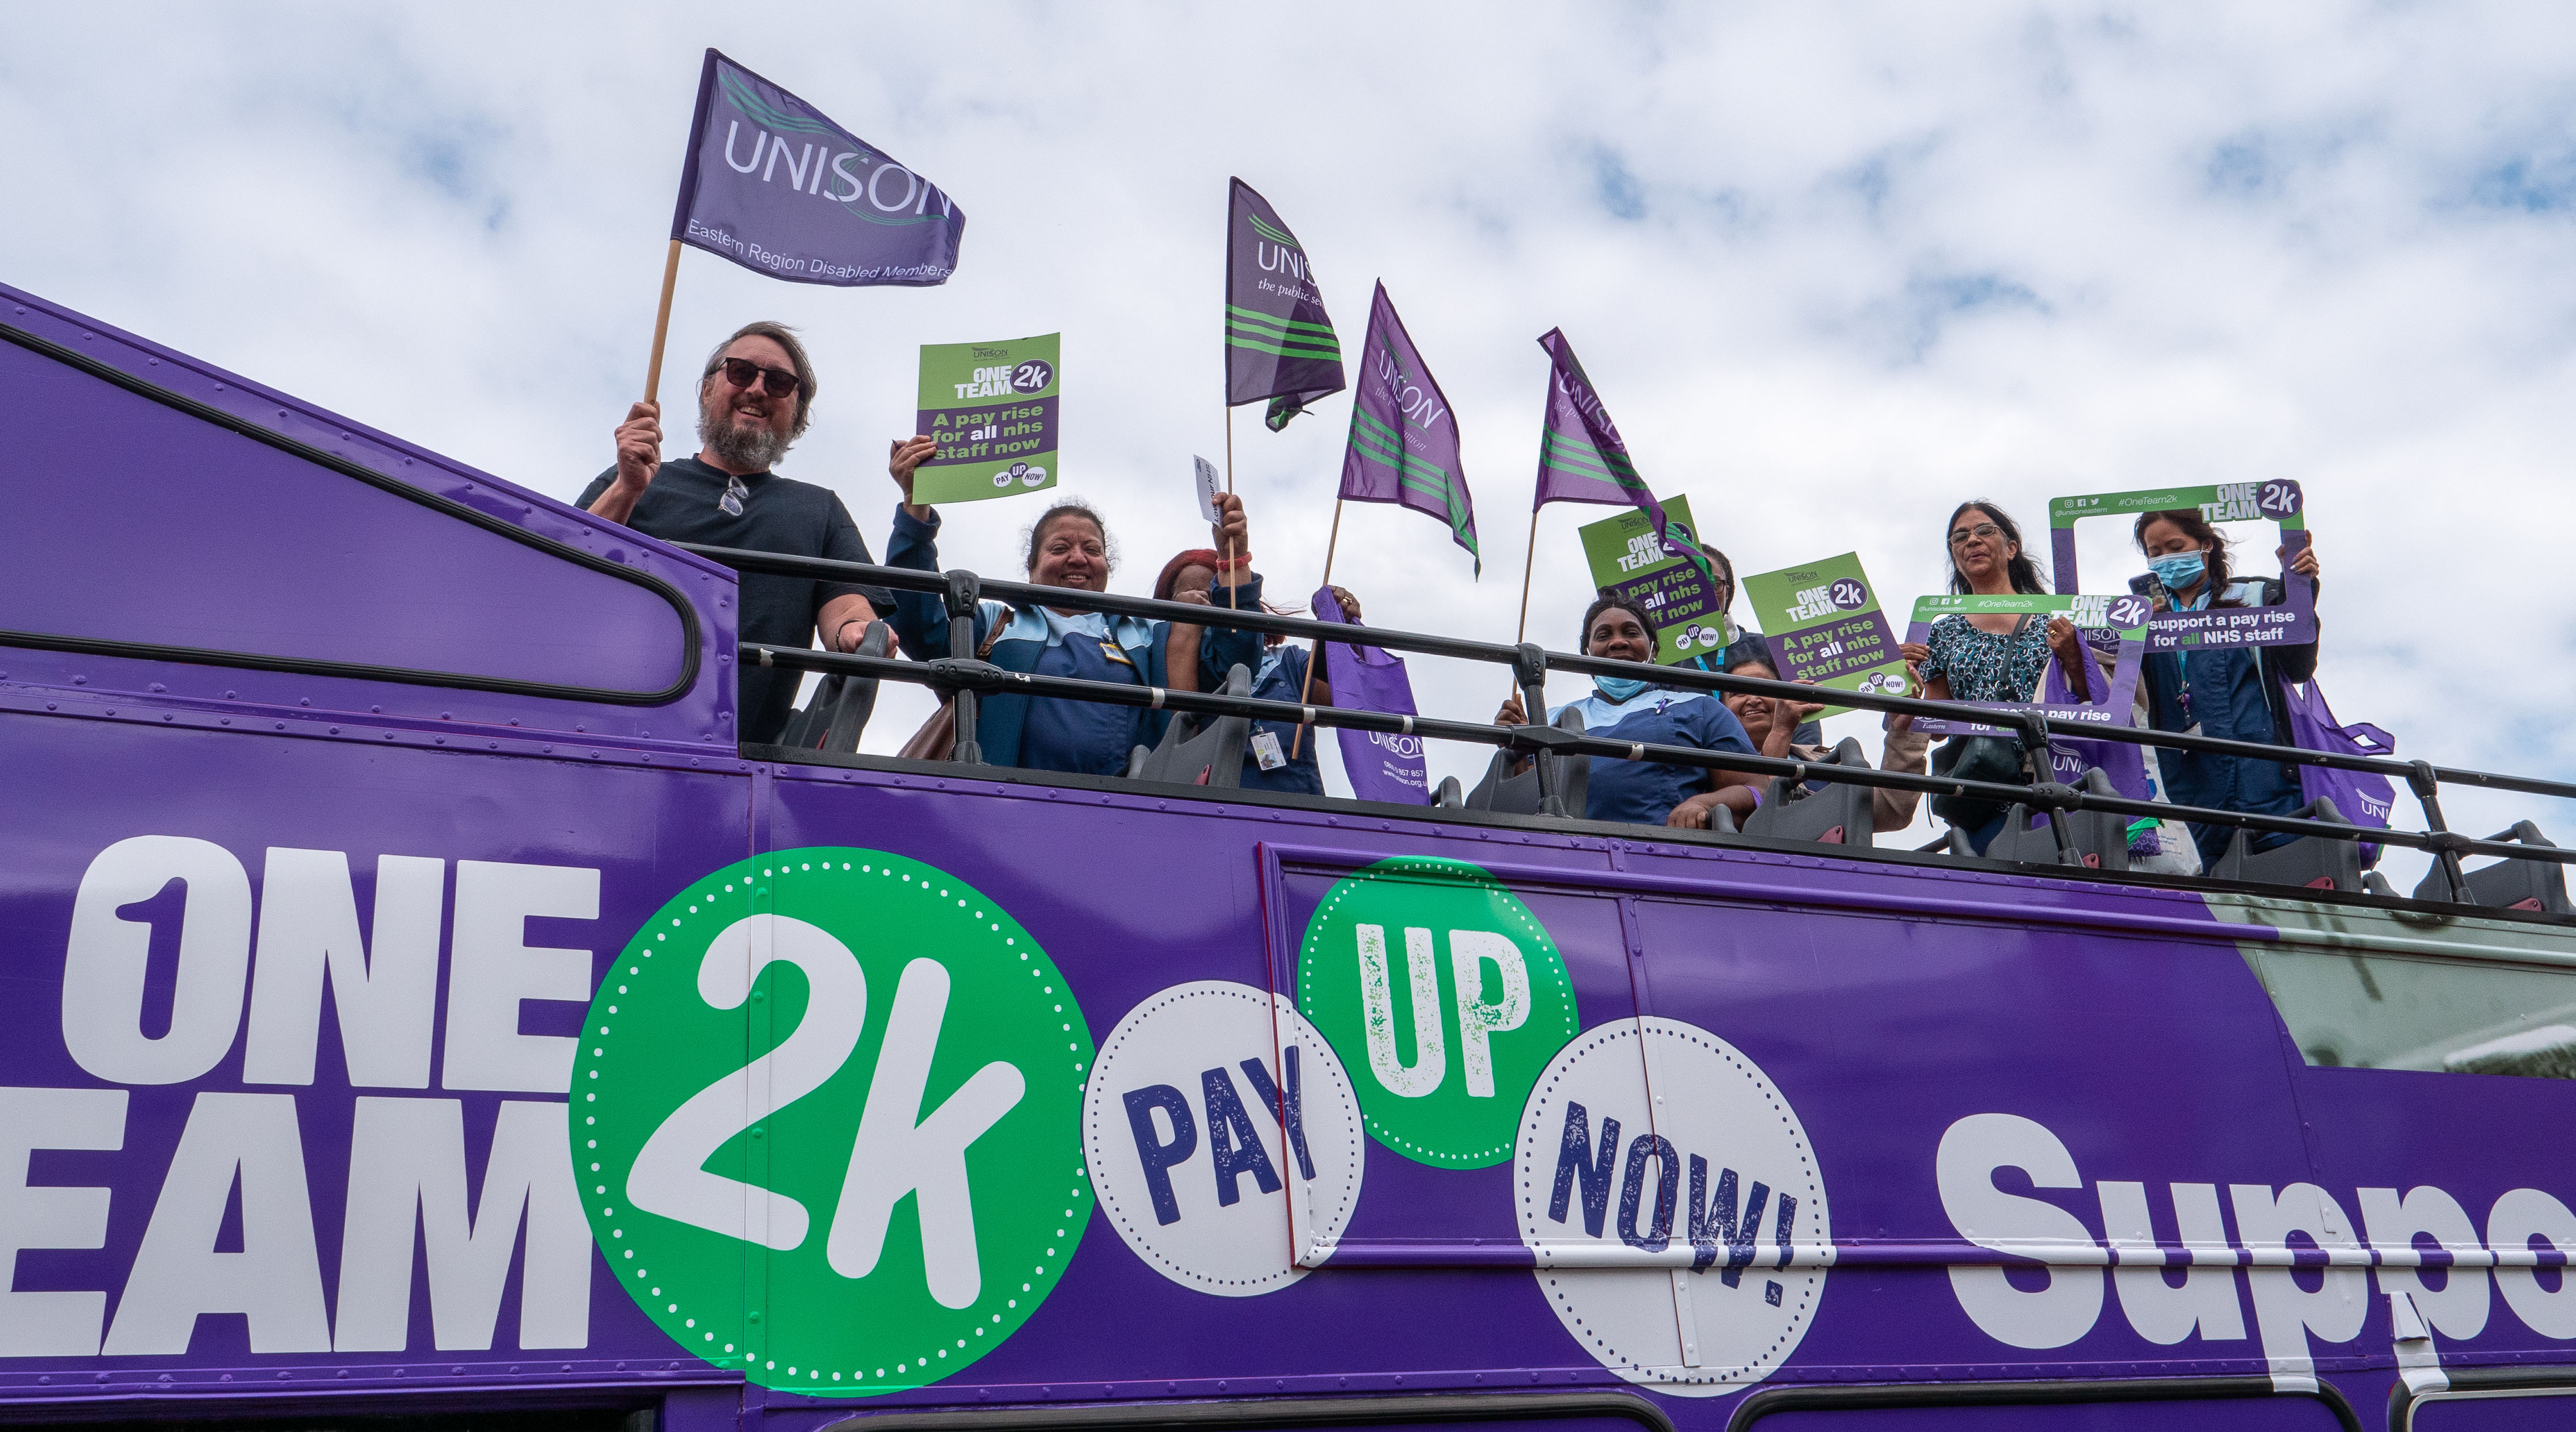 NHS workers on an open-top pay bus holding flags and calling for a pay rise